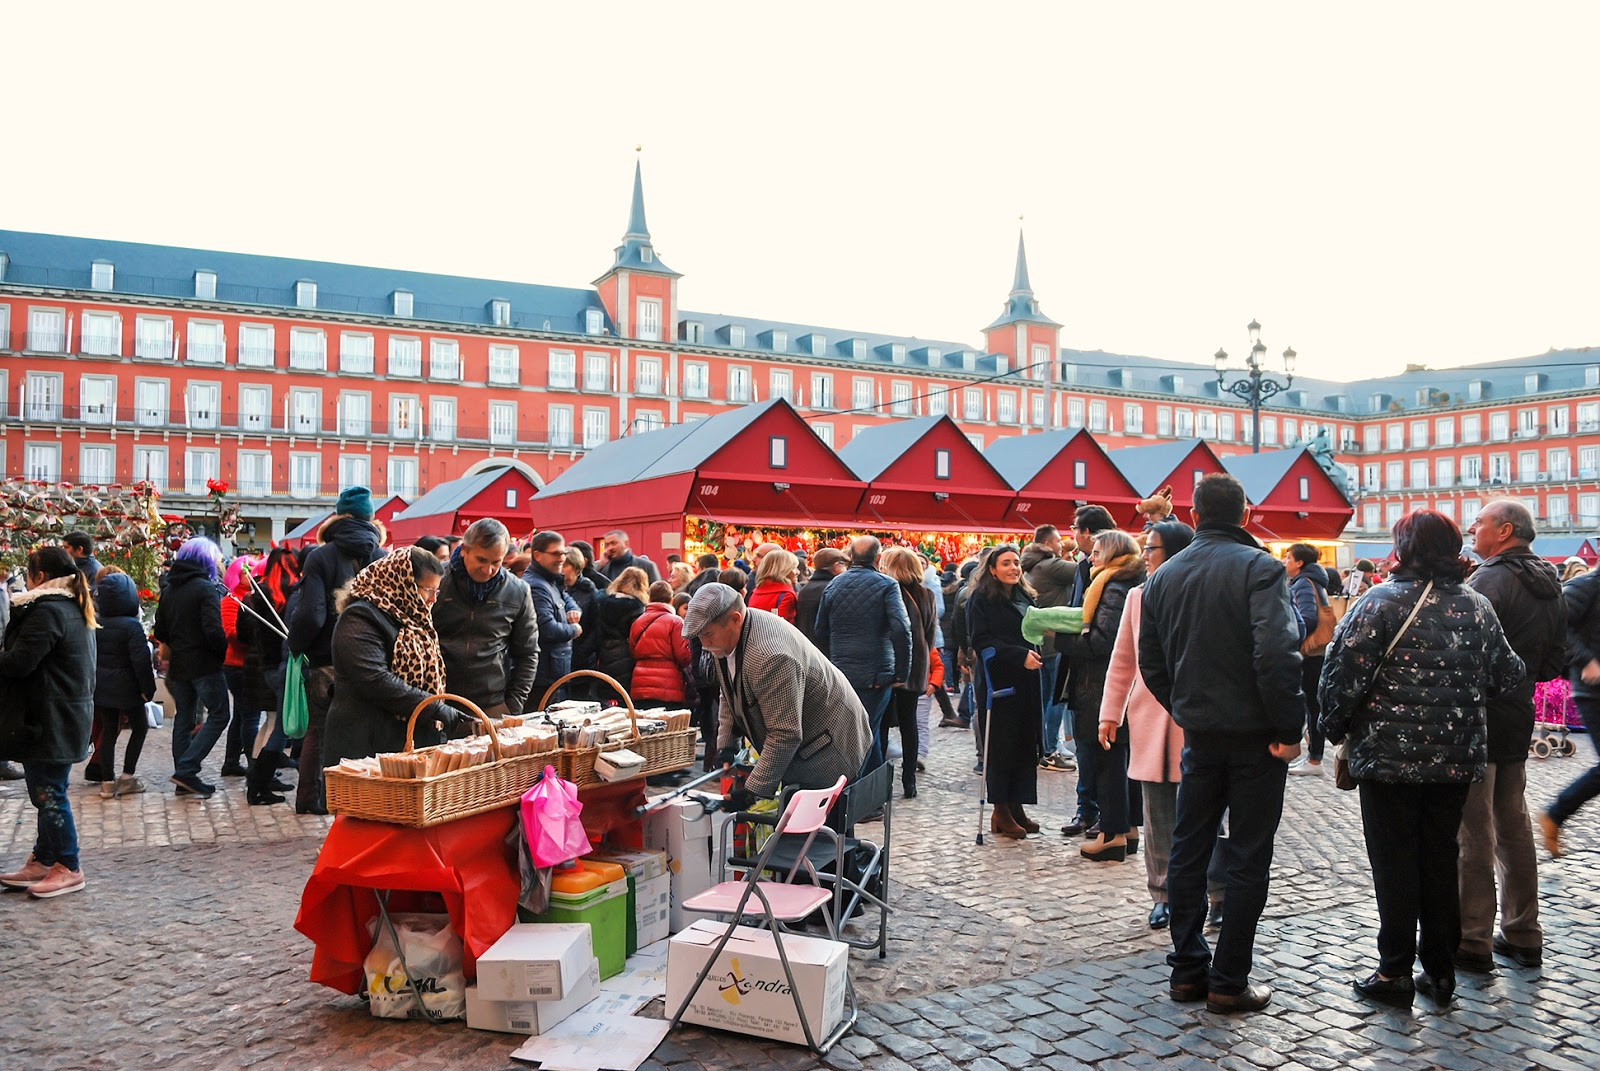 mercado plaza mayor madrid navidad christmas